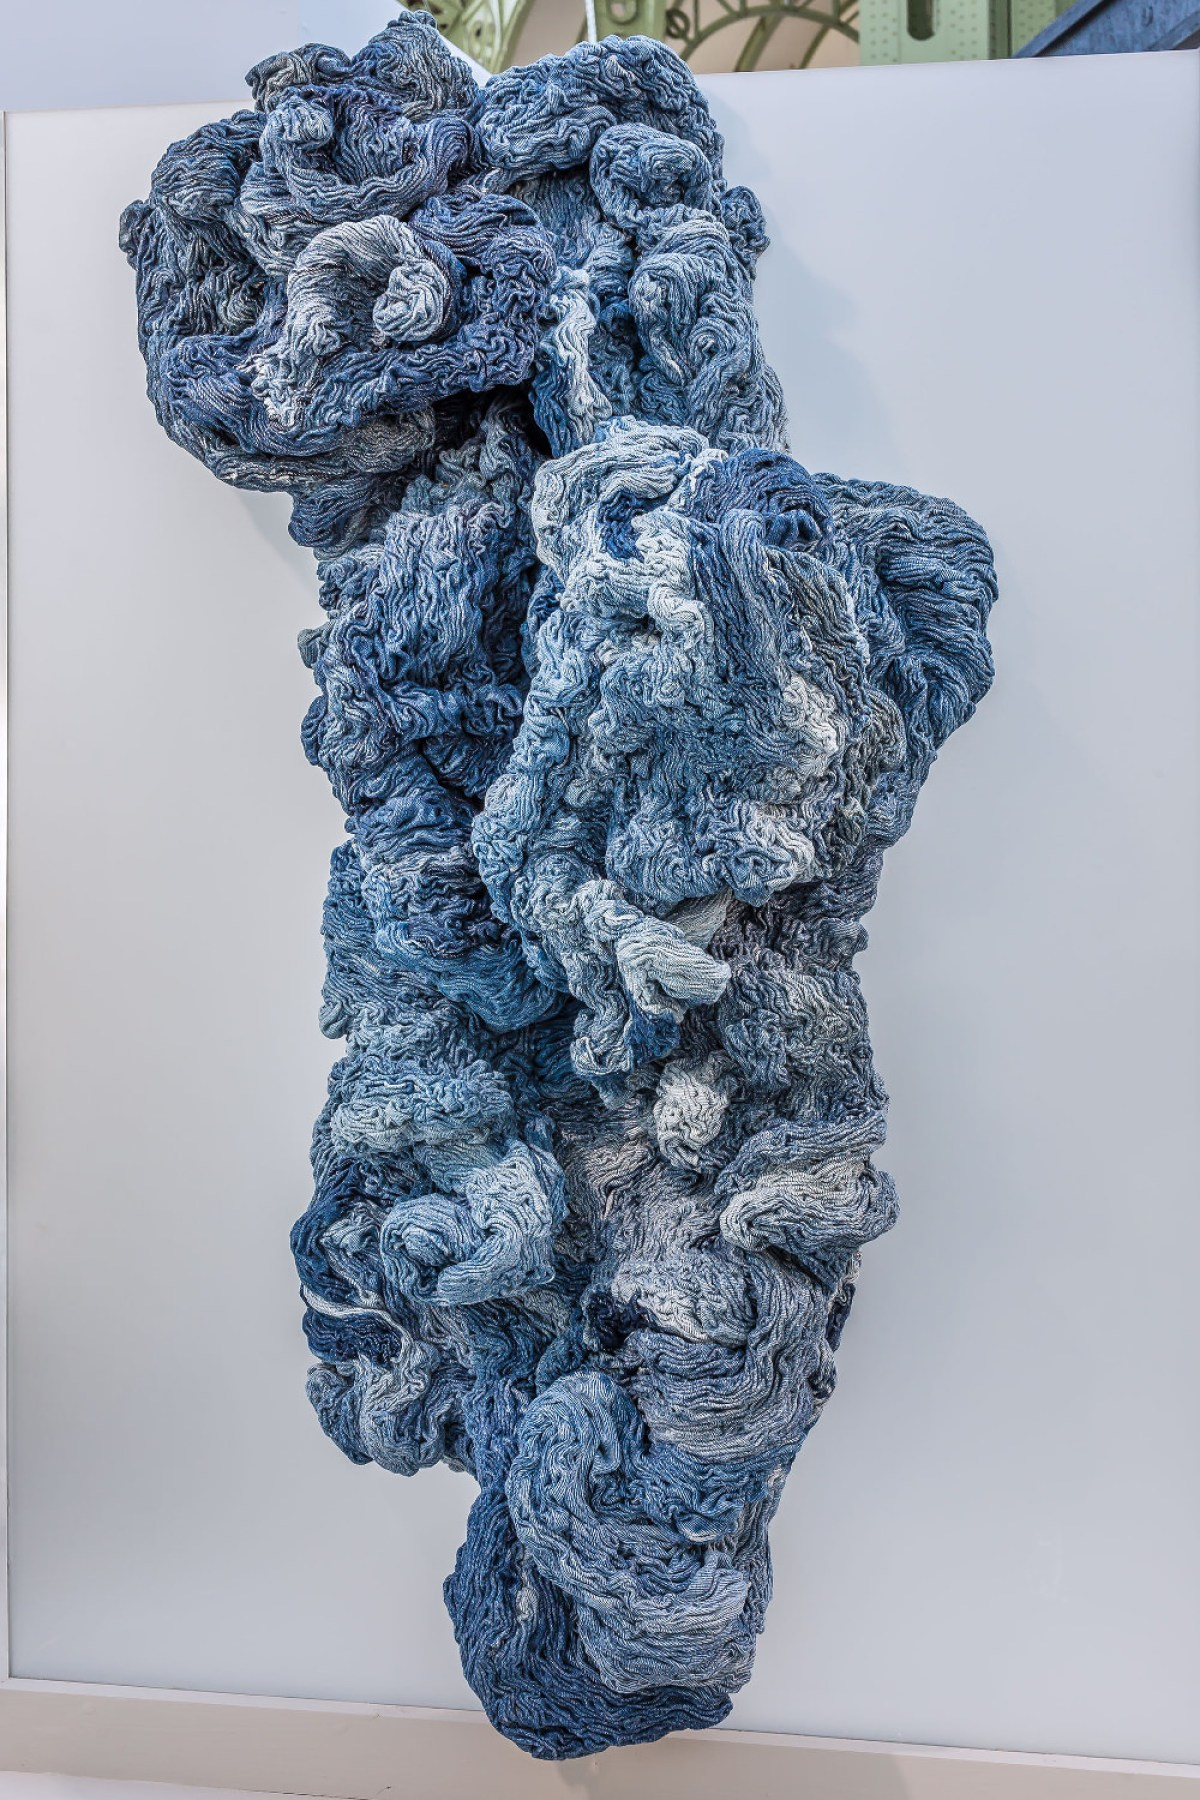 Hanne Friis Smocked Sculptures - THE FIBER STUDIO